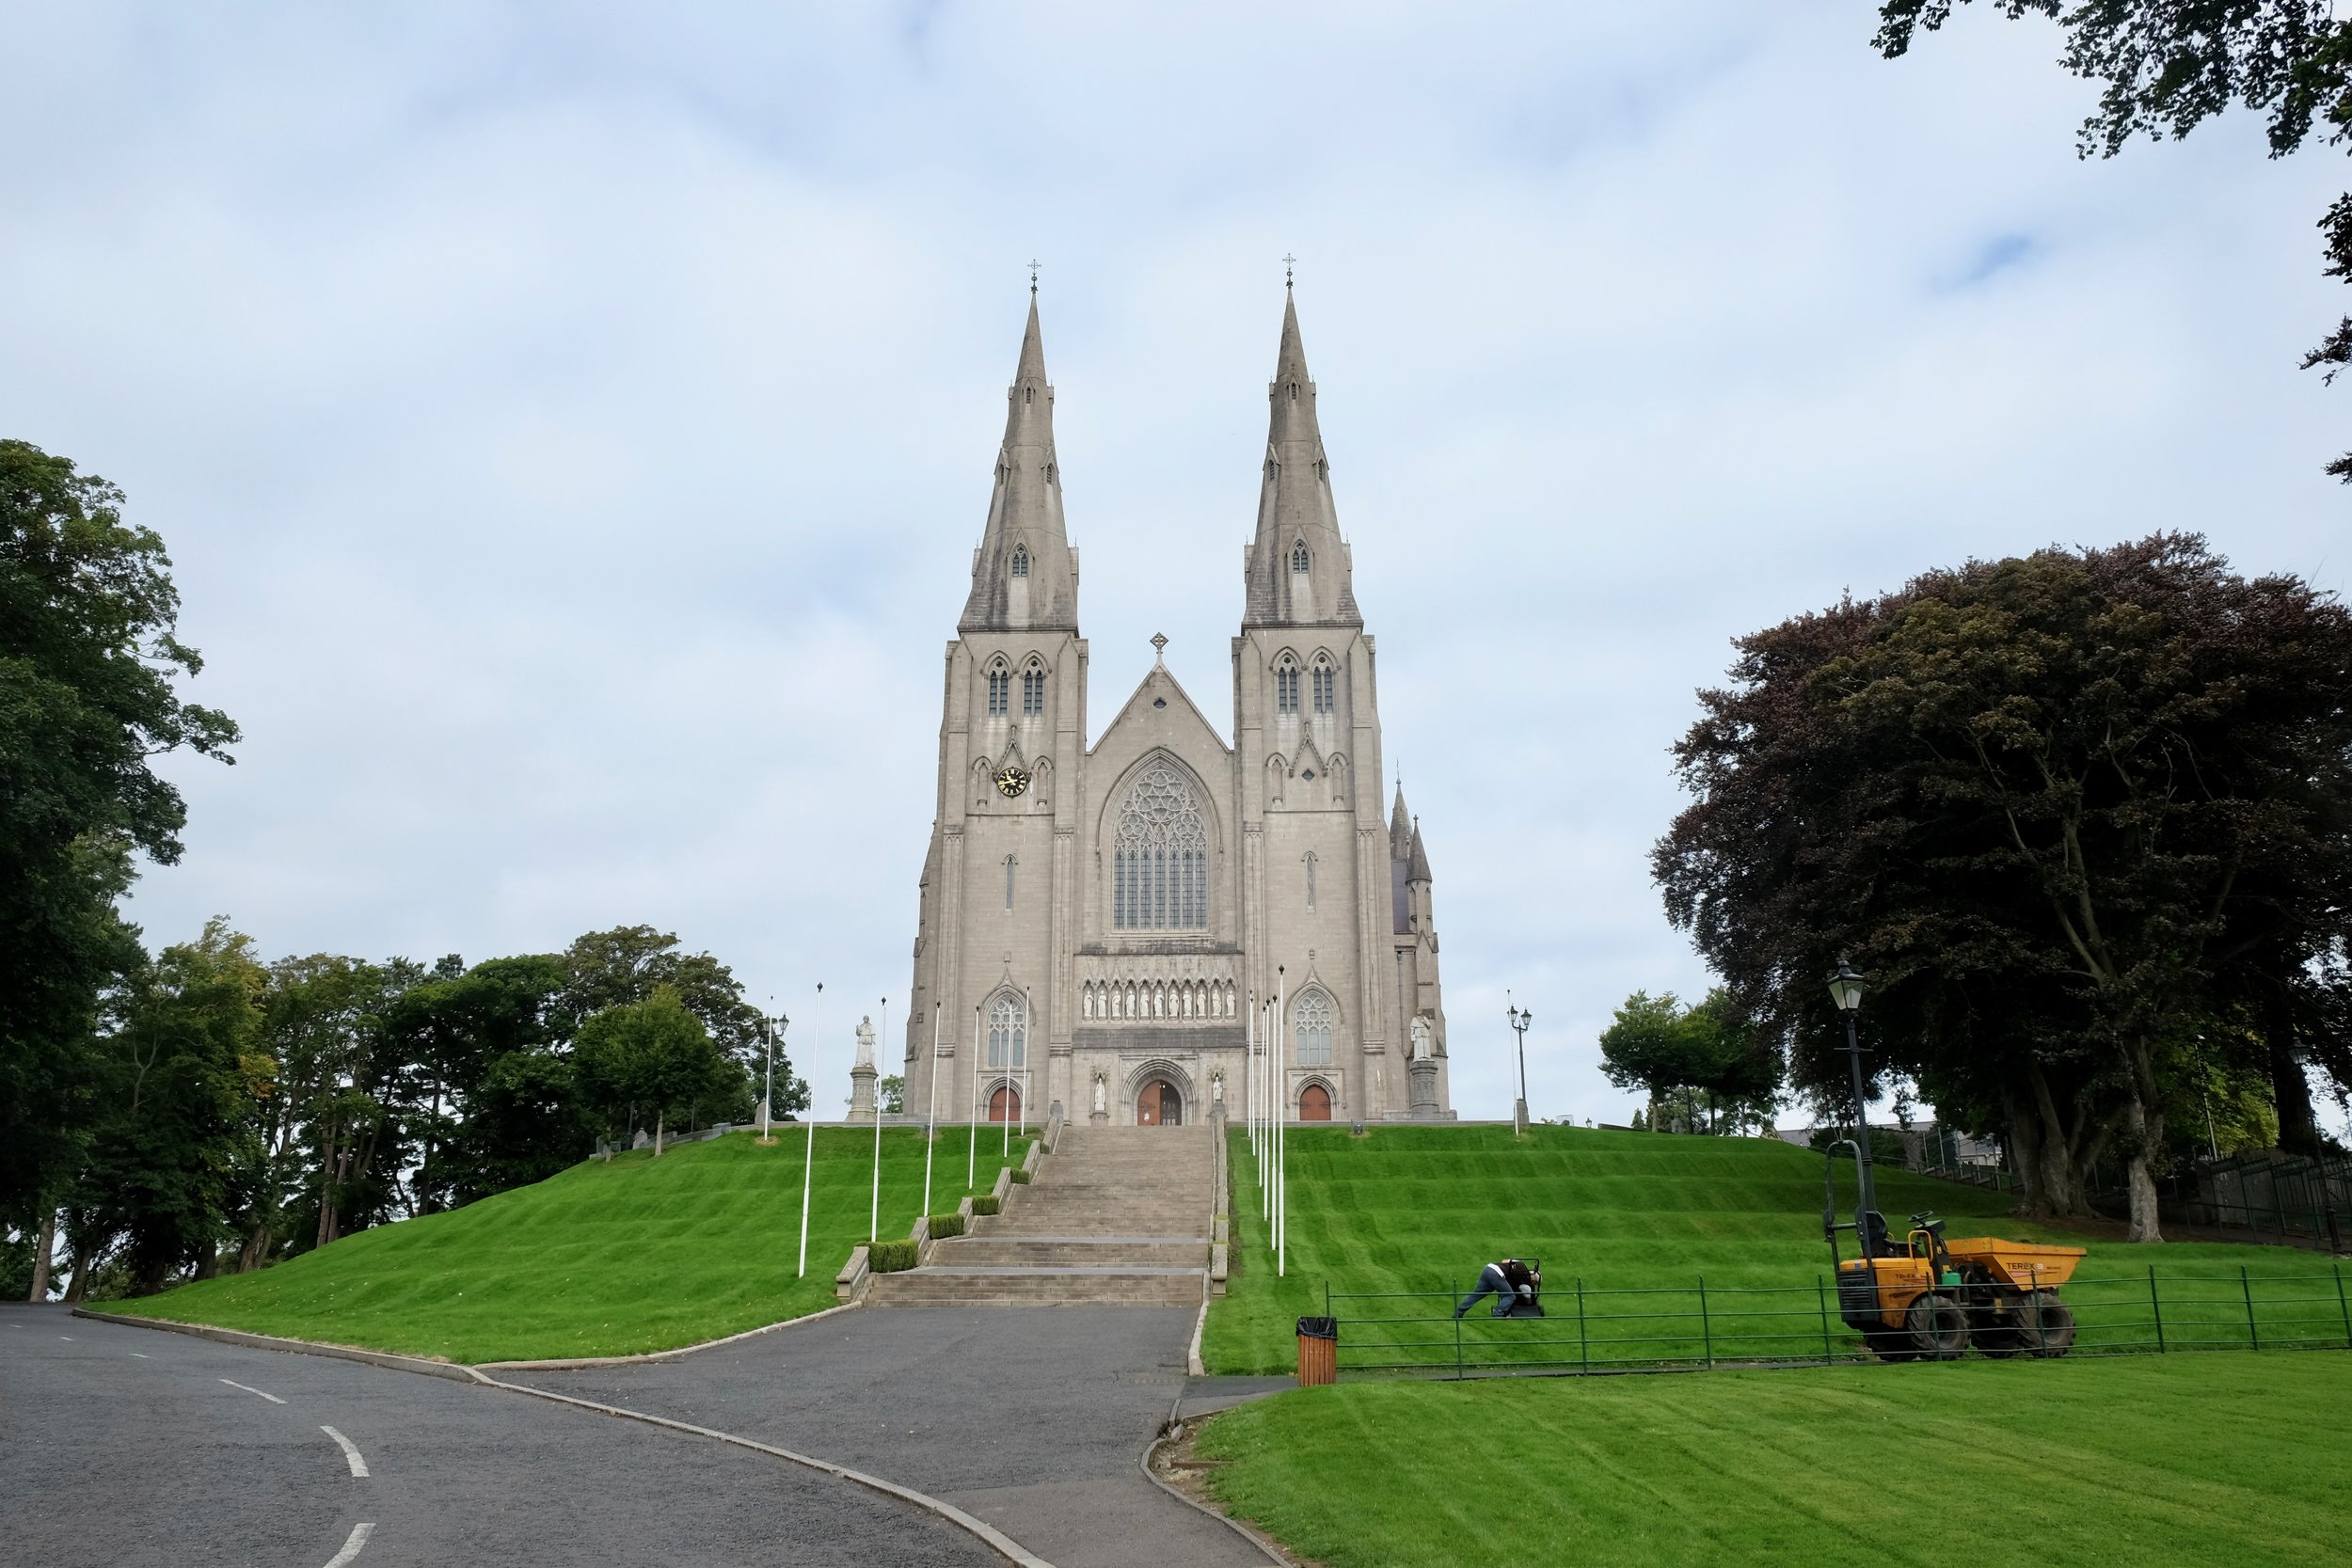 This is Saint Patrick's Cathedral.